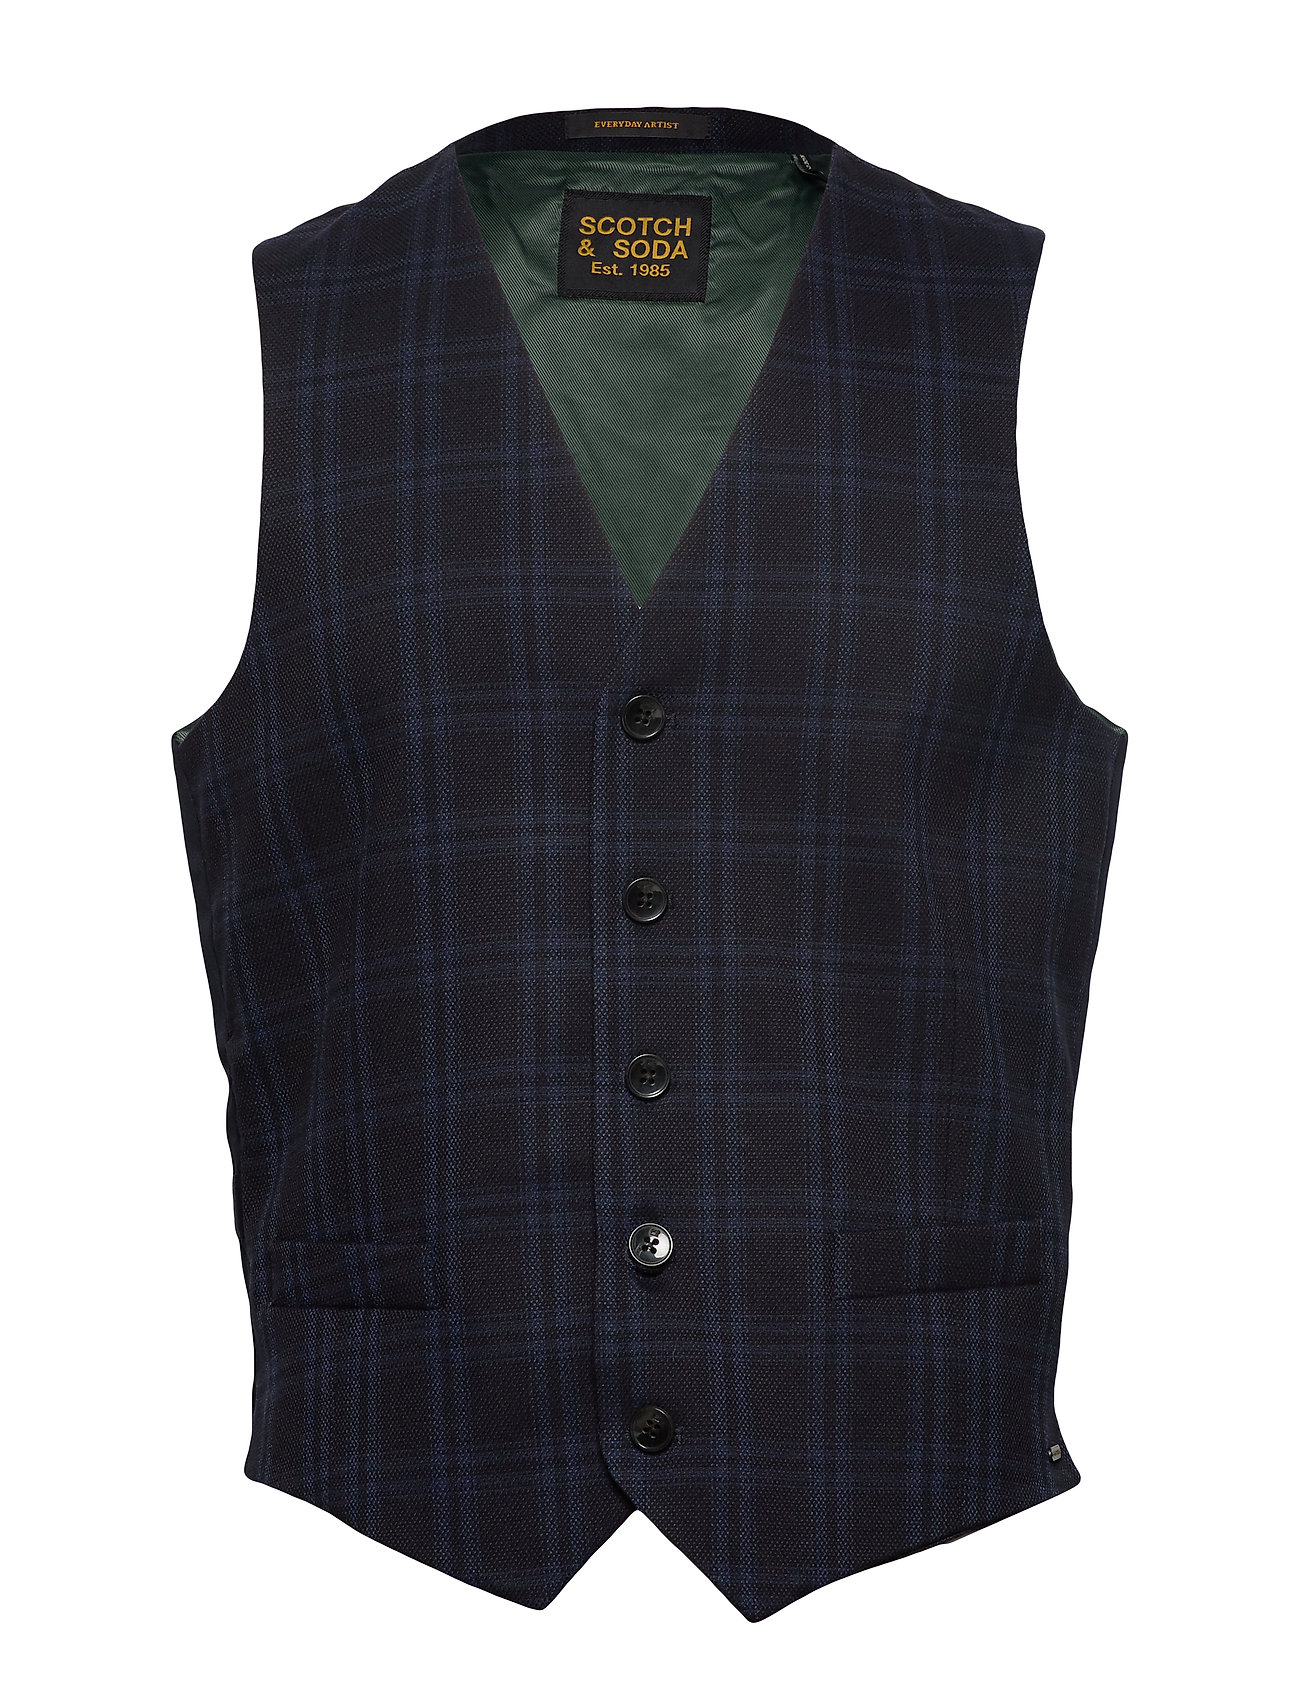 Scotch & Soda Gilet in yarn-dyed structured quality - COMBO A